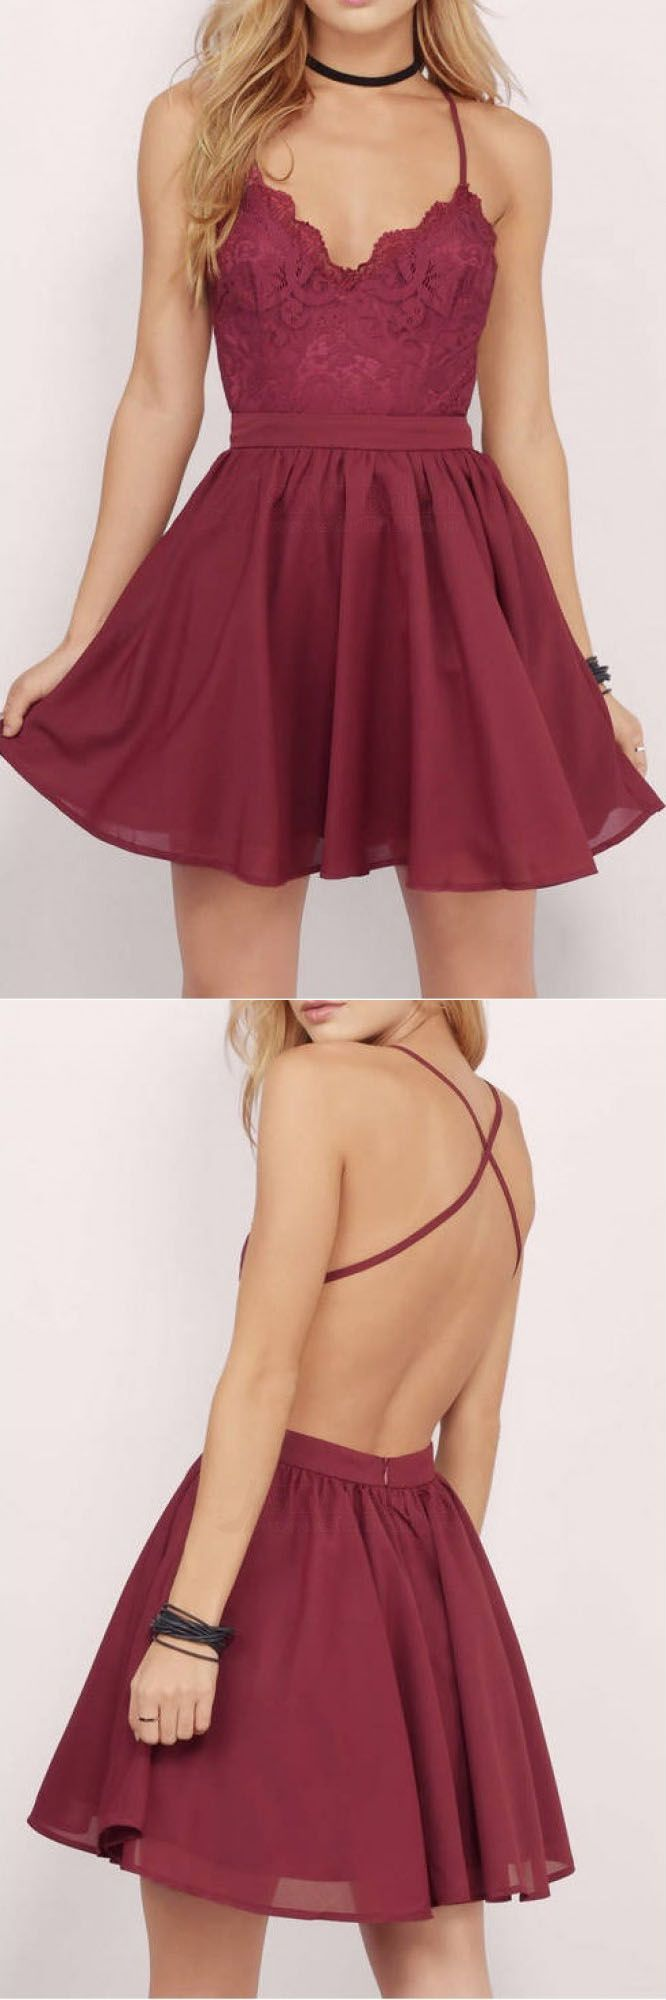 homecoming dresses,short homecoming dresses,burgundy homecoming dresses,lace homecoming dresses,fashion homecoming dresses